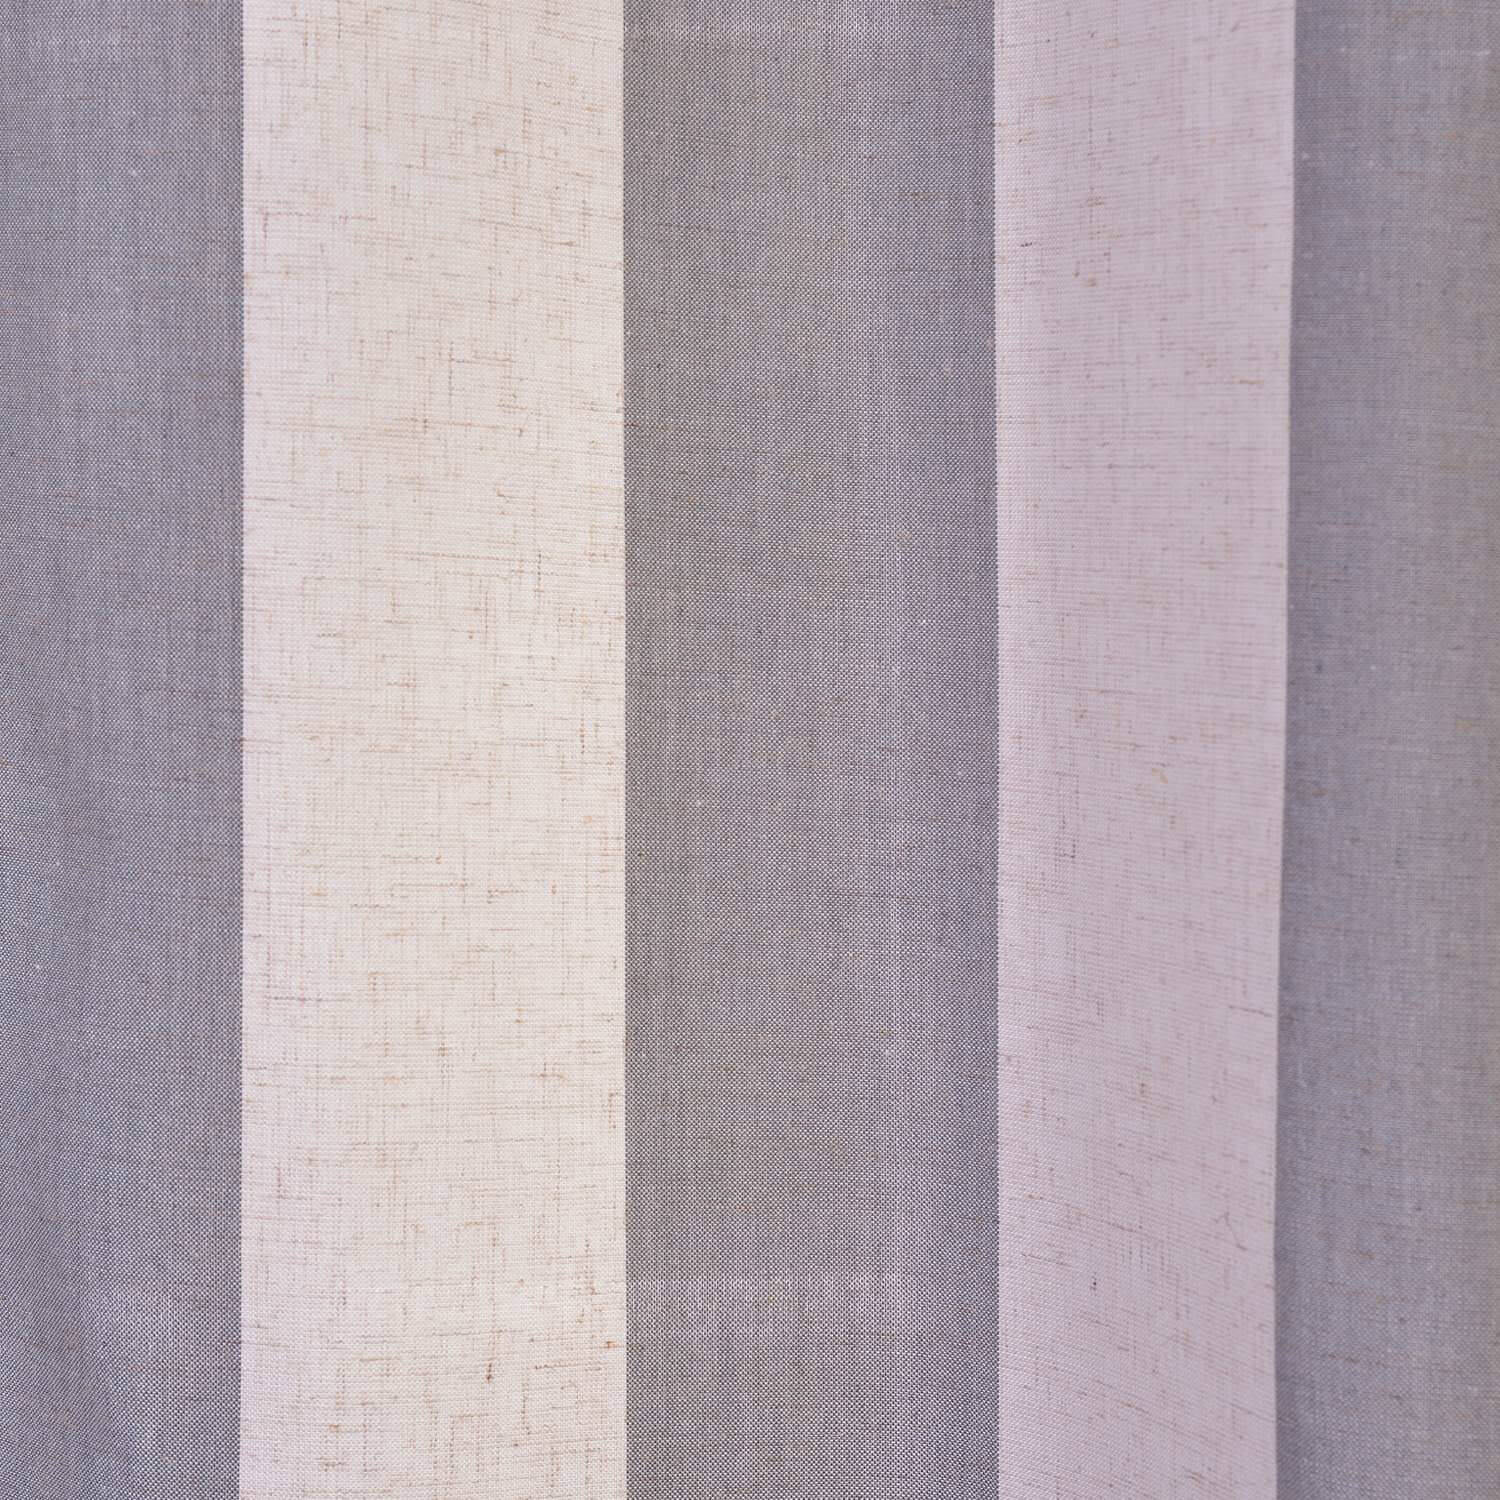 Bermuda Gray Linen Blend Stripe Swatch